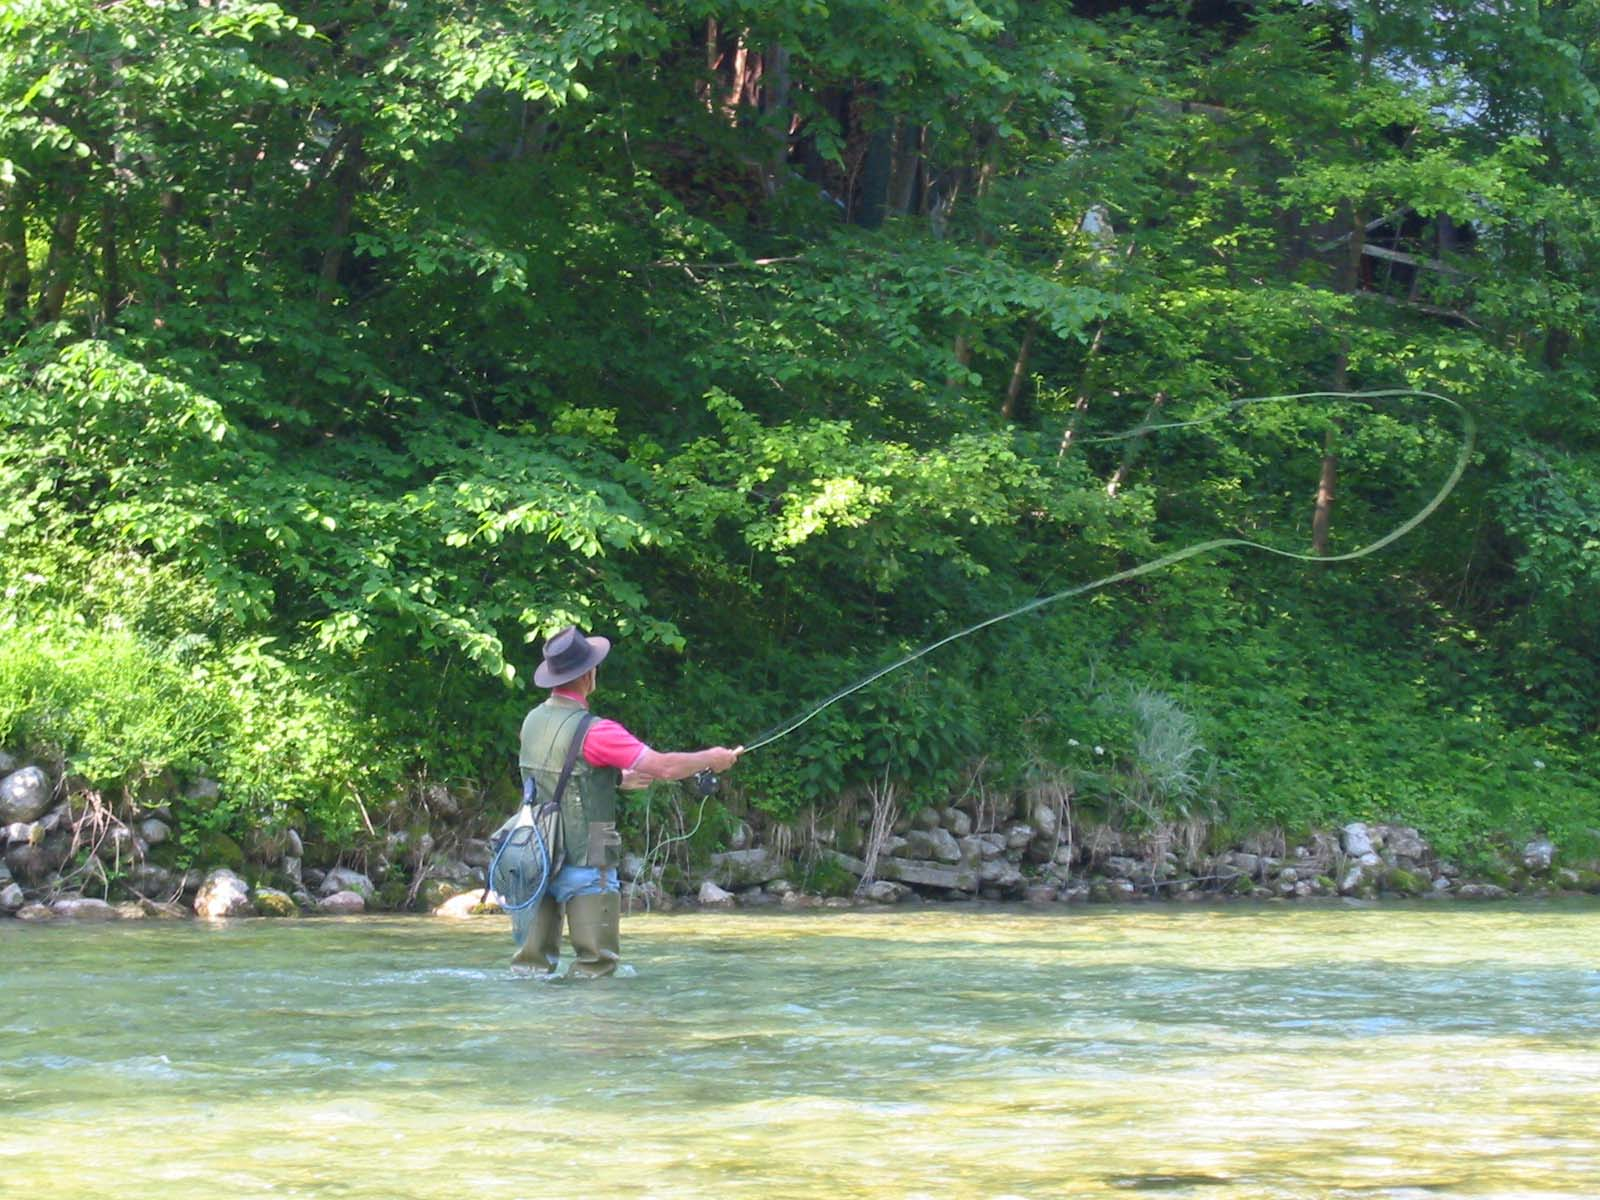 54100b6d1 Fly fishing - Wikipedia